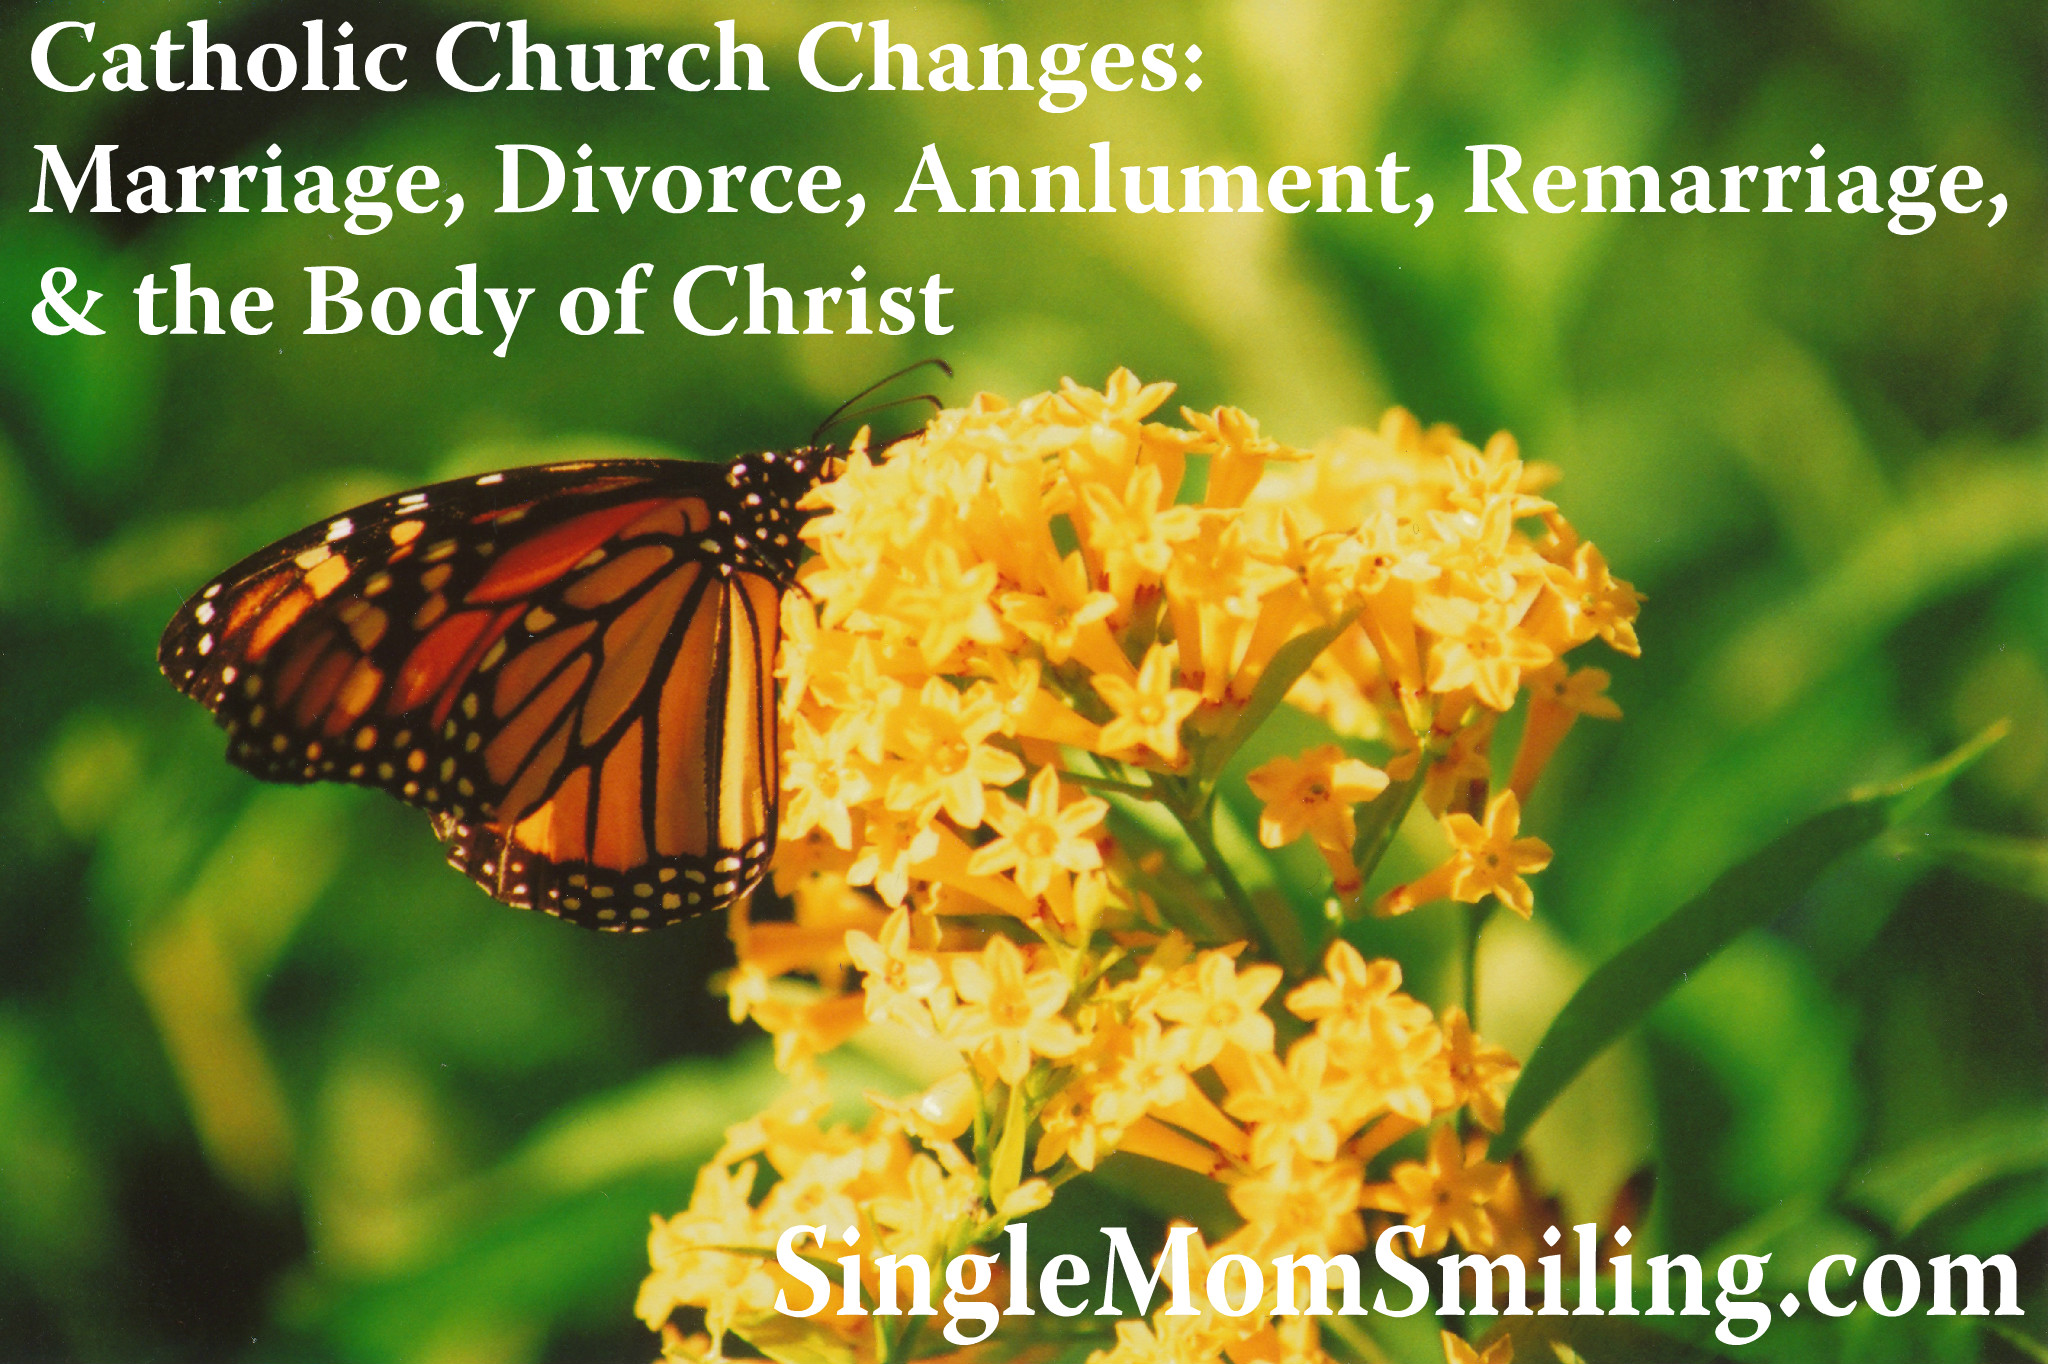 Butterfly - Catholic-Church-Changes-Marriage-Divorce-Annulment-Remarriage-Body-of-Christ-